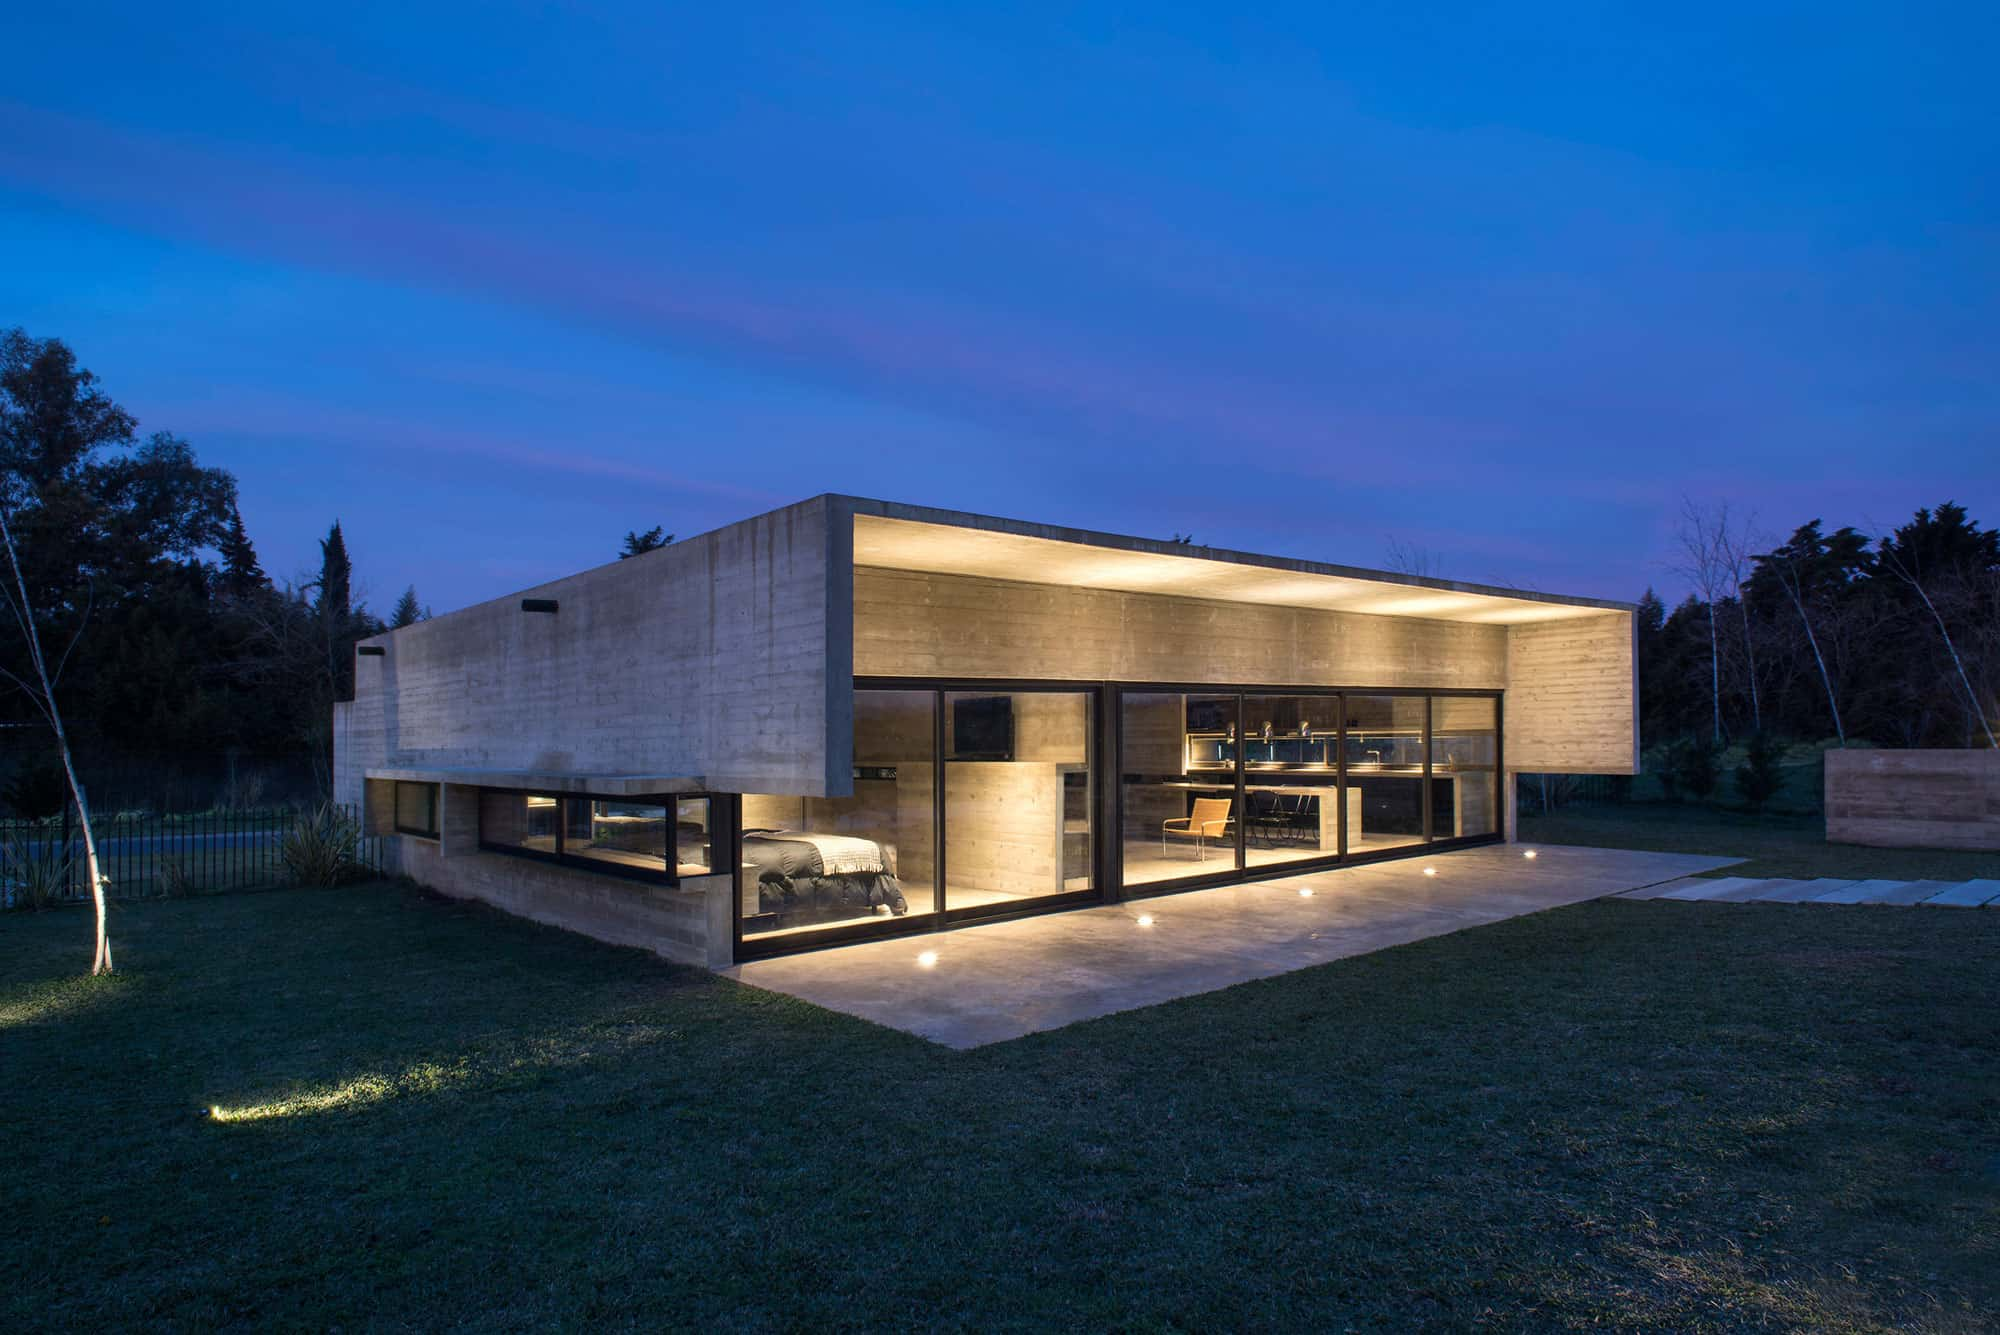 Spectacular Concrete House Surrounded By Fields And Vegetation